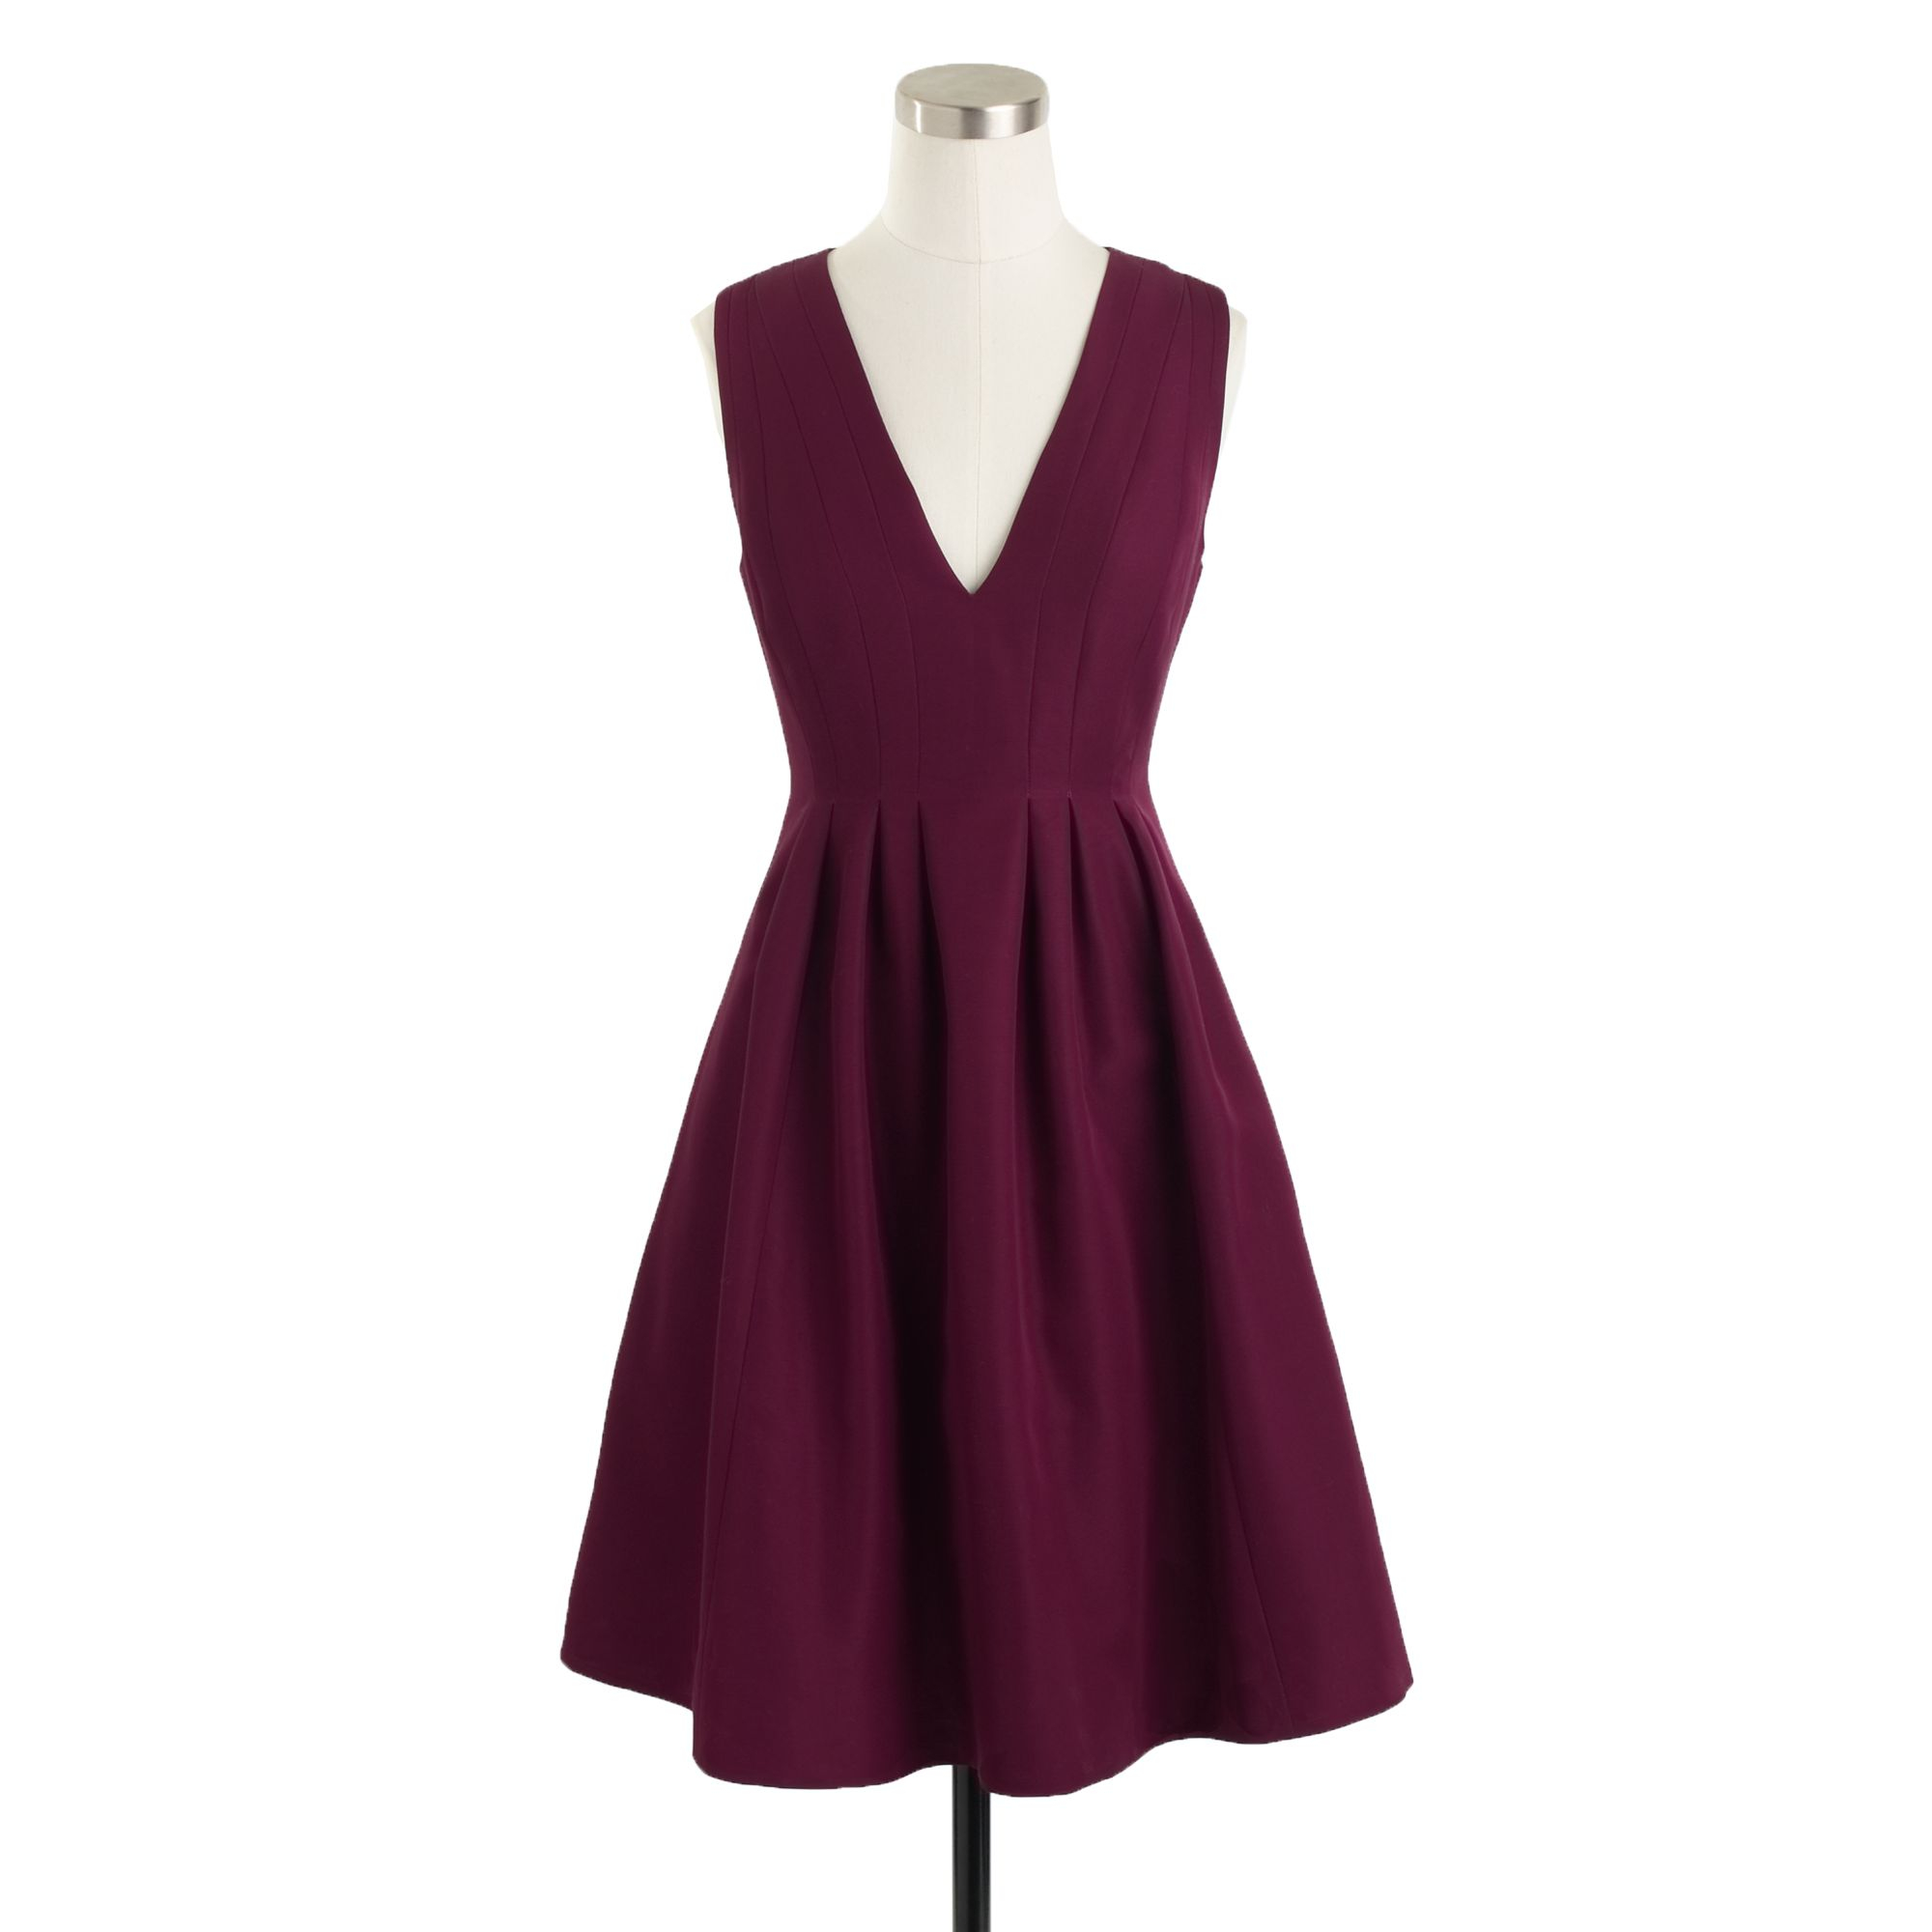 Sophie Dress: J.crew Sophie Dress In Classic Faille In Red (crushed